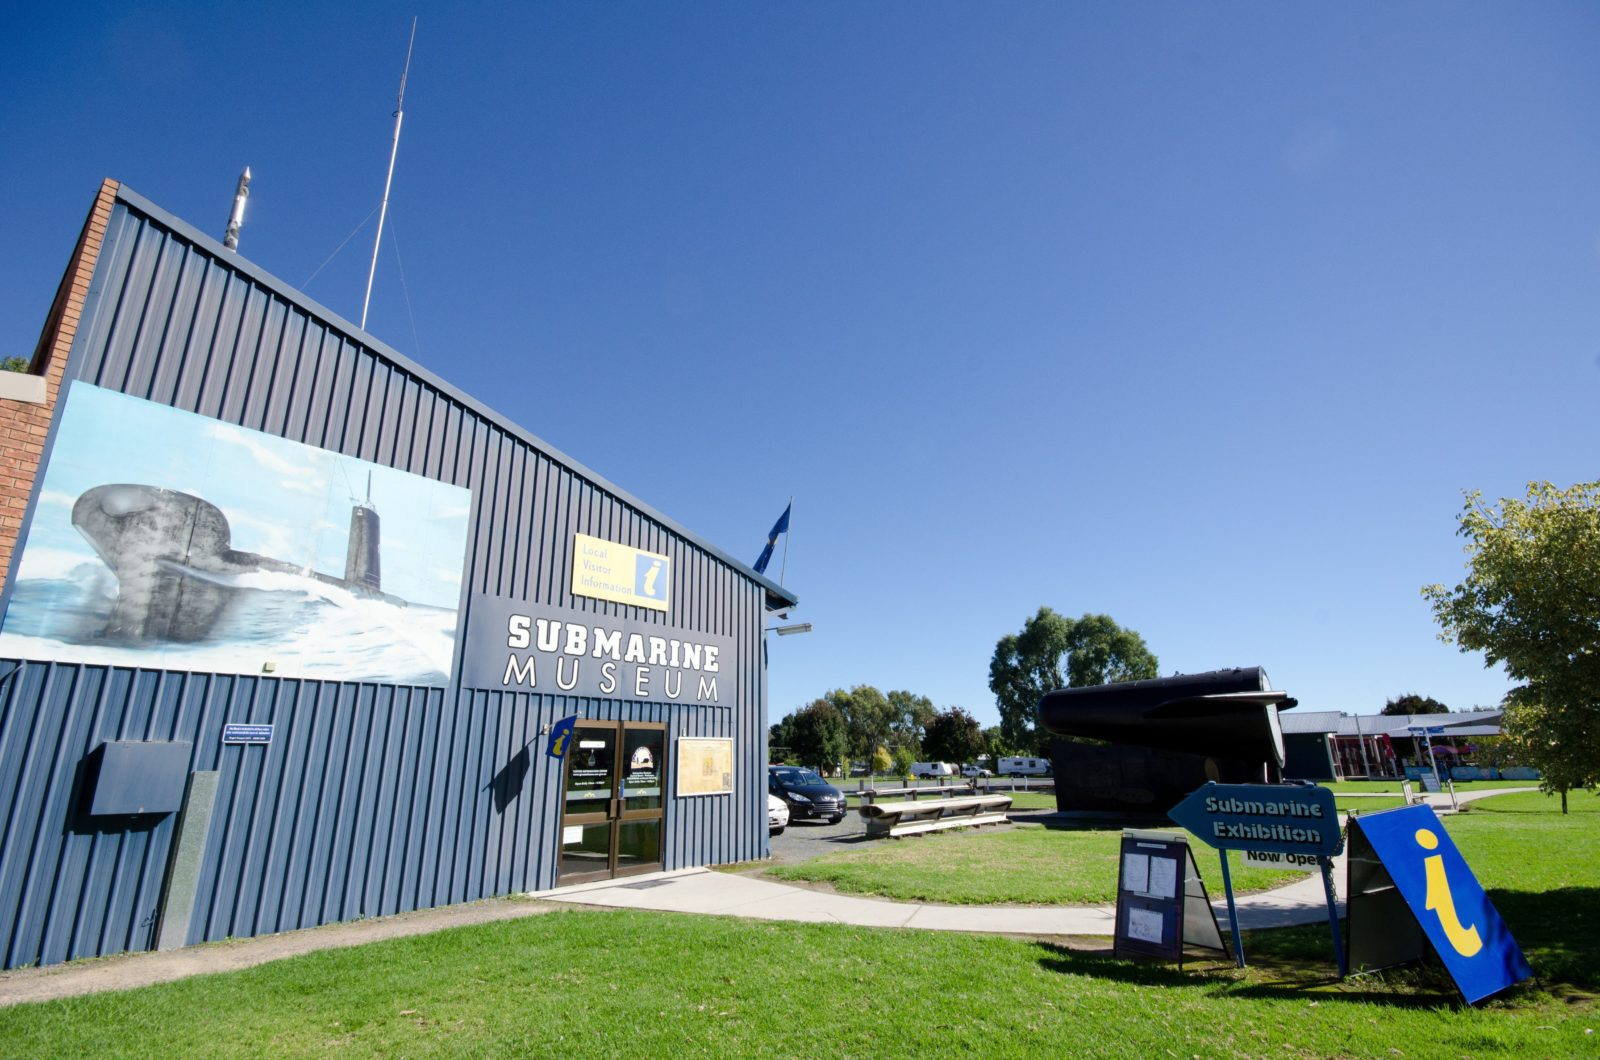 Holbrook Submarine Museum and Greater Hume Shire Visitor Information Centre